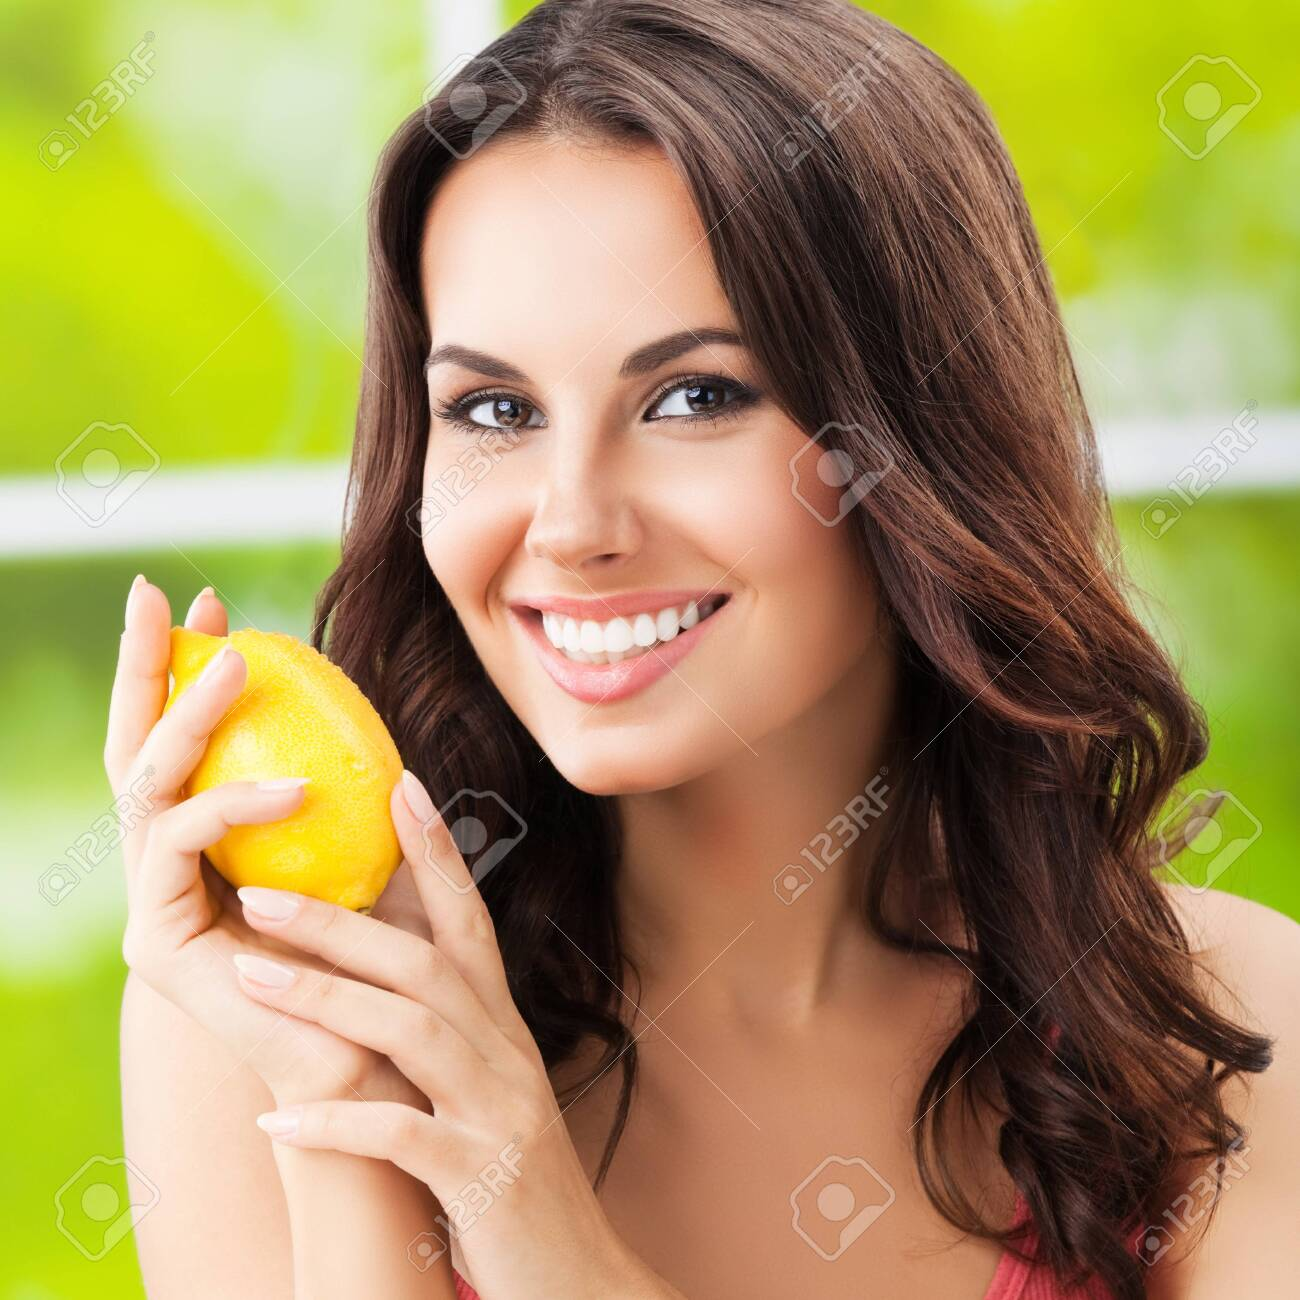 Young happy smiling beautiful woman with lemon, outdoors - 126403231